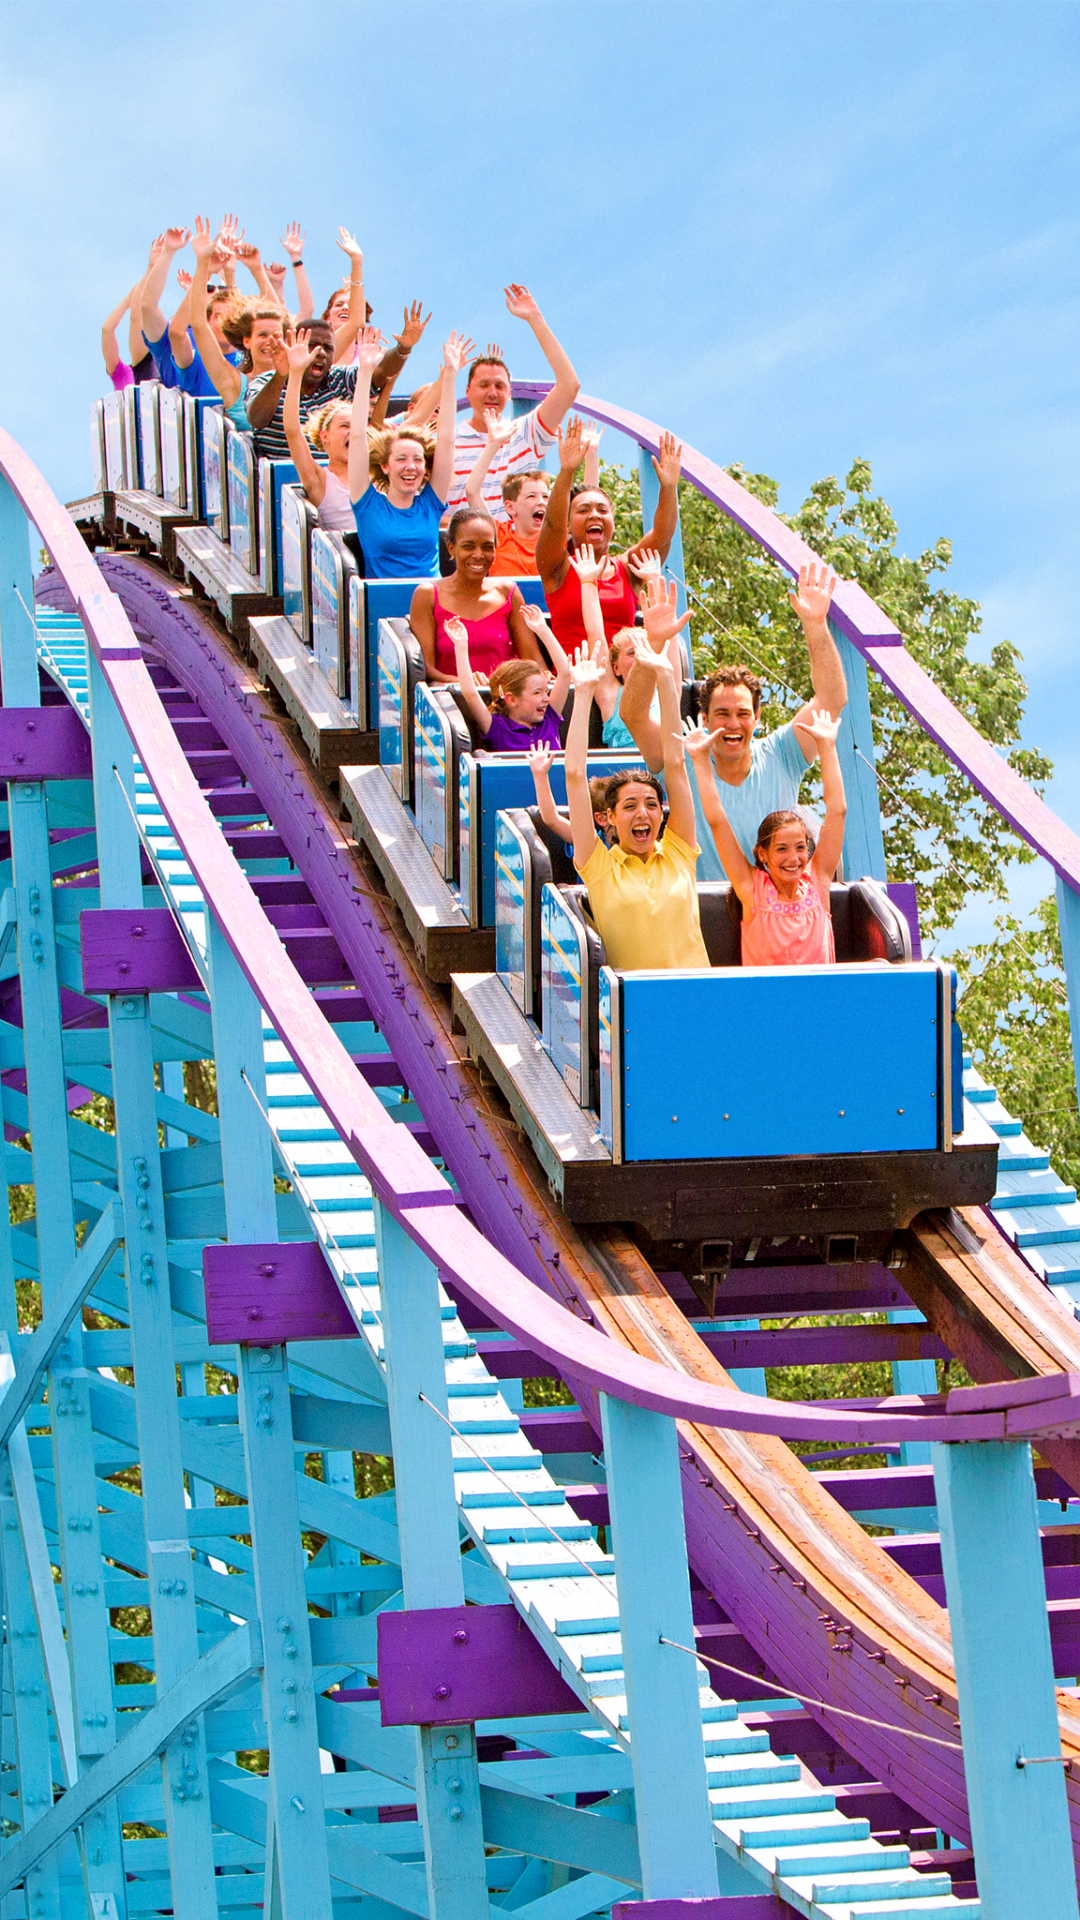 Families riding large blue and purple wooden roller coaster